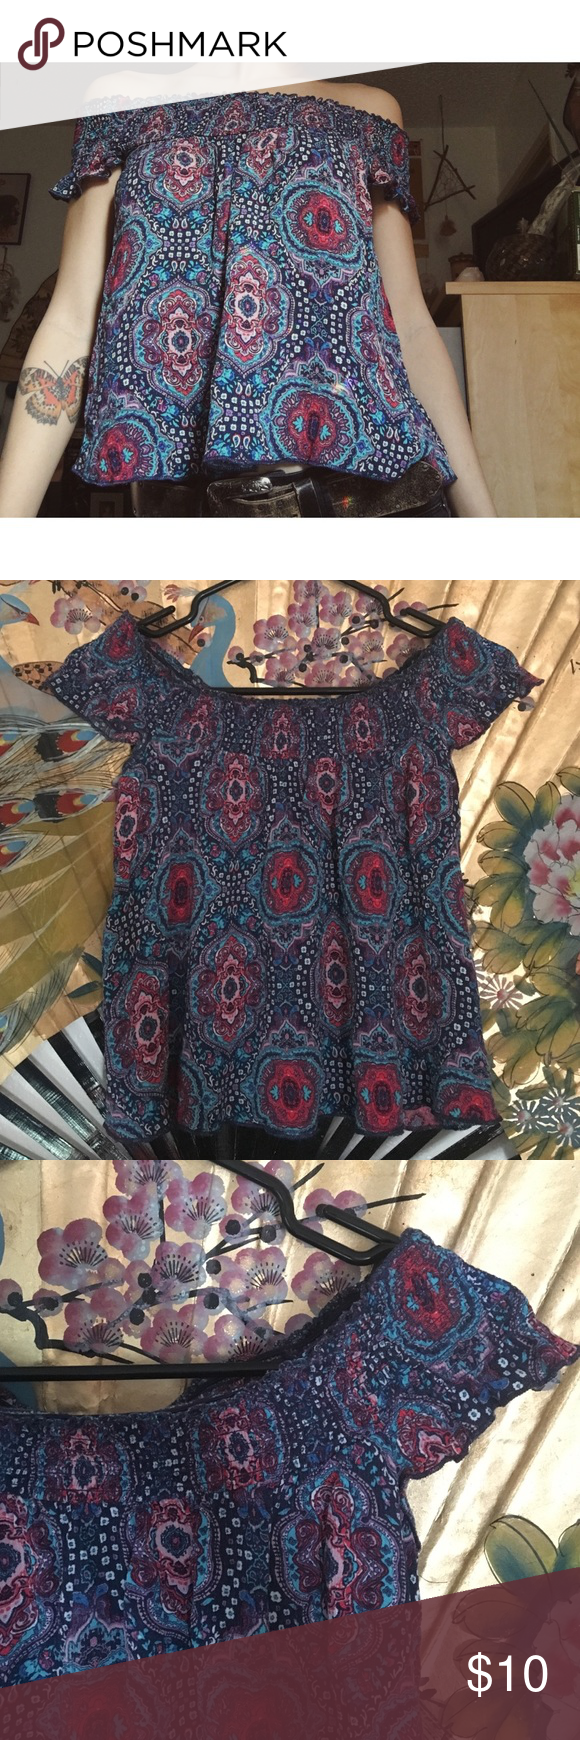 Off The Shoulder Top ✨ Pretty Off The Shoulder Top, Light Weight, Slightly Cropped, (Details shown in photos) Worn a couple time & in great condition. Mossimo Supply Co. Tops Blouses